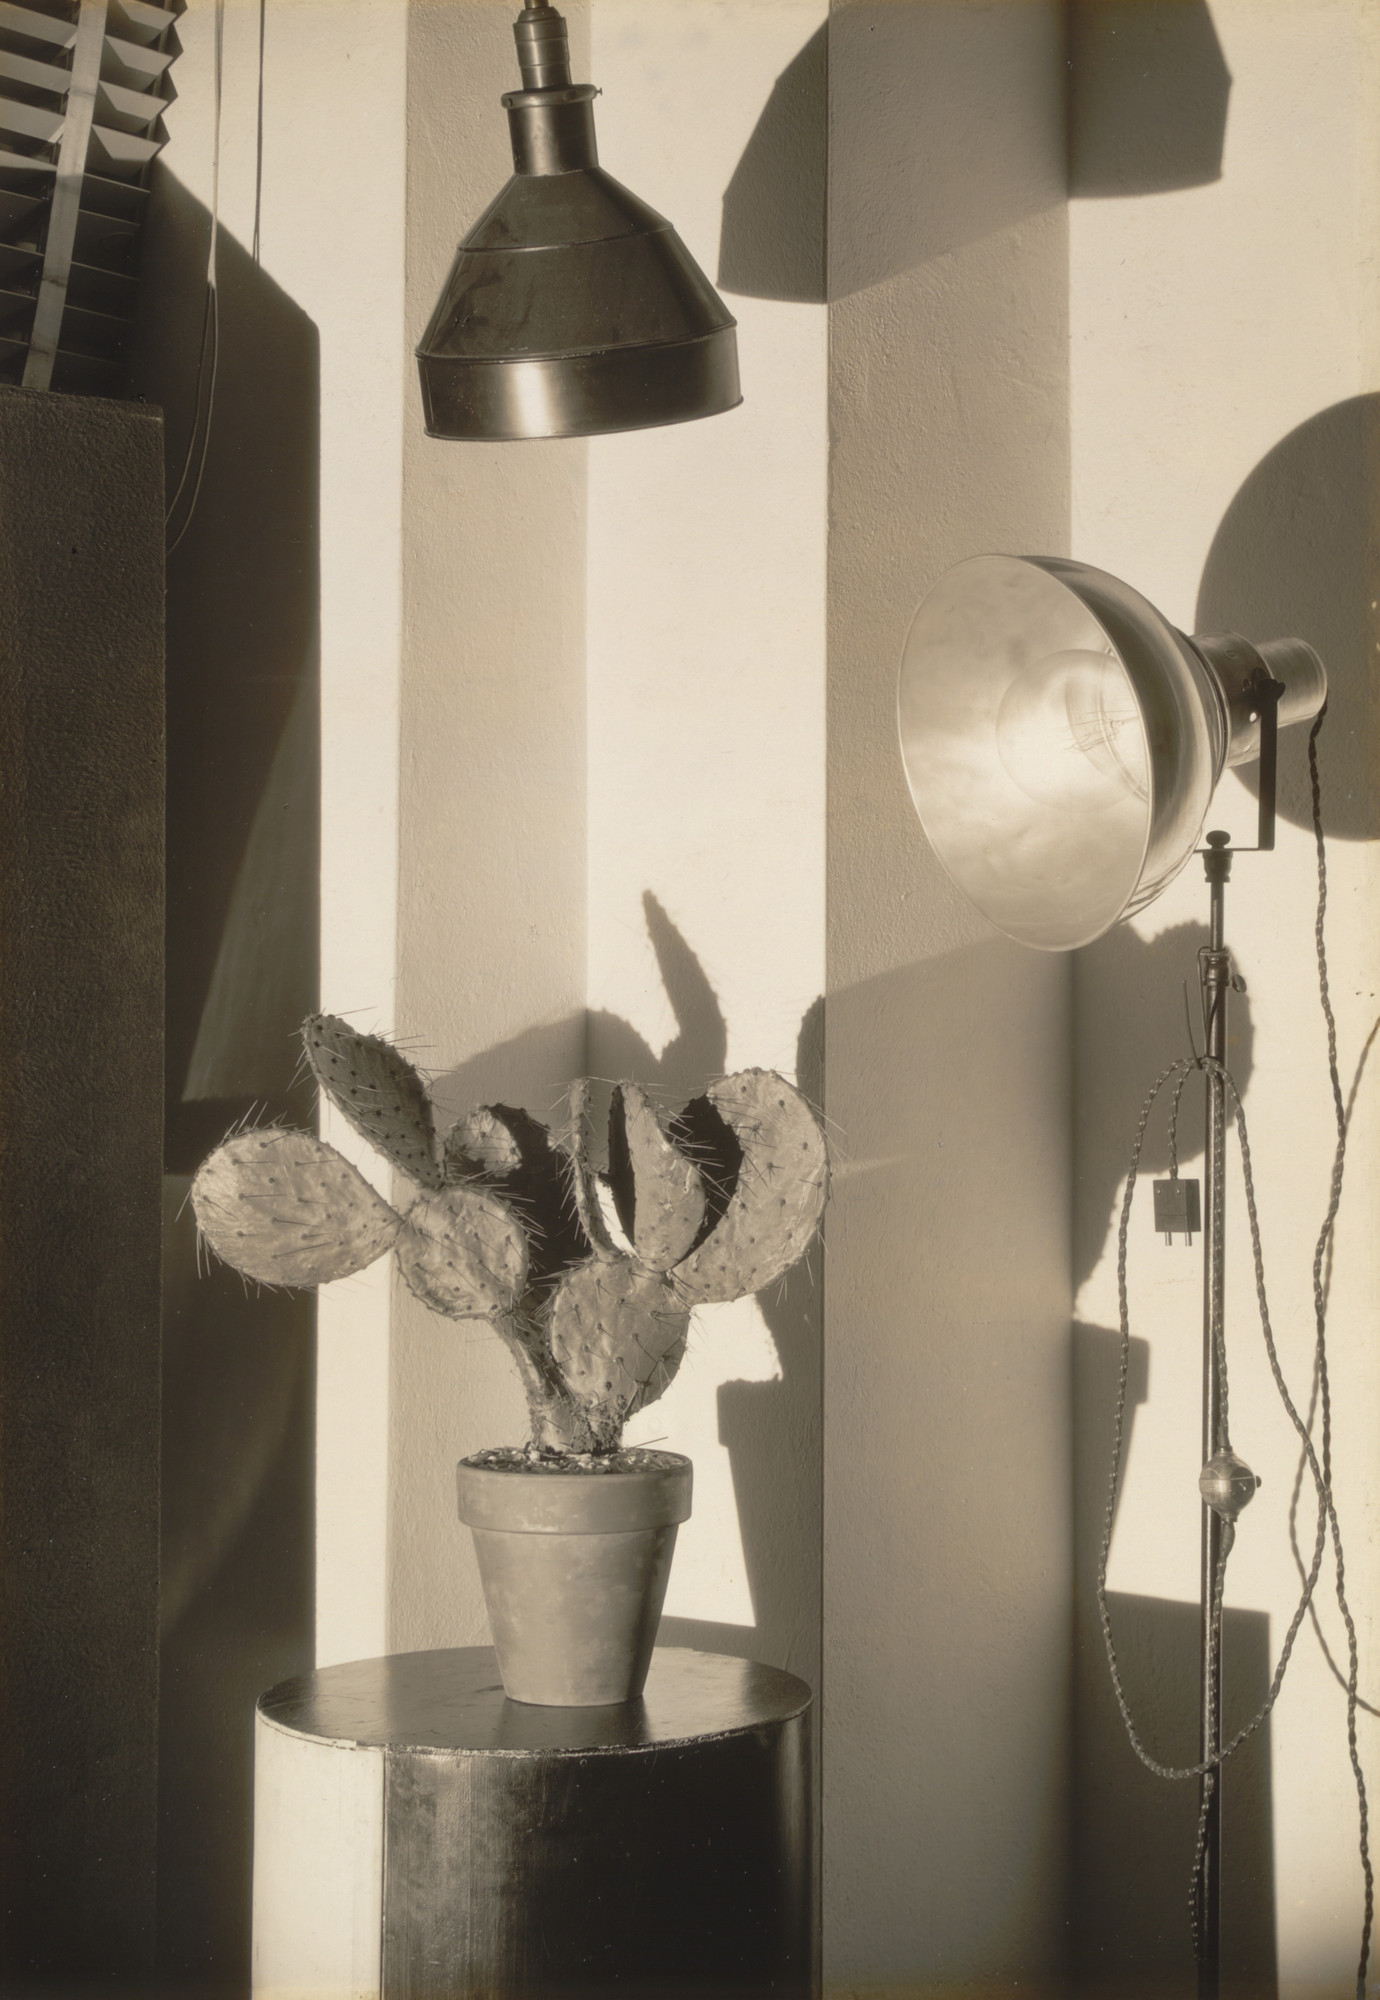 Charles Sheeler. Cactus and Photographer's Lamp, New York. 1931